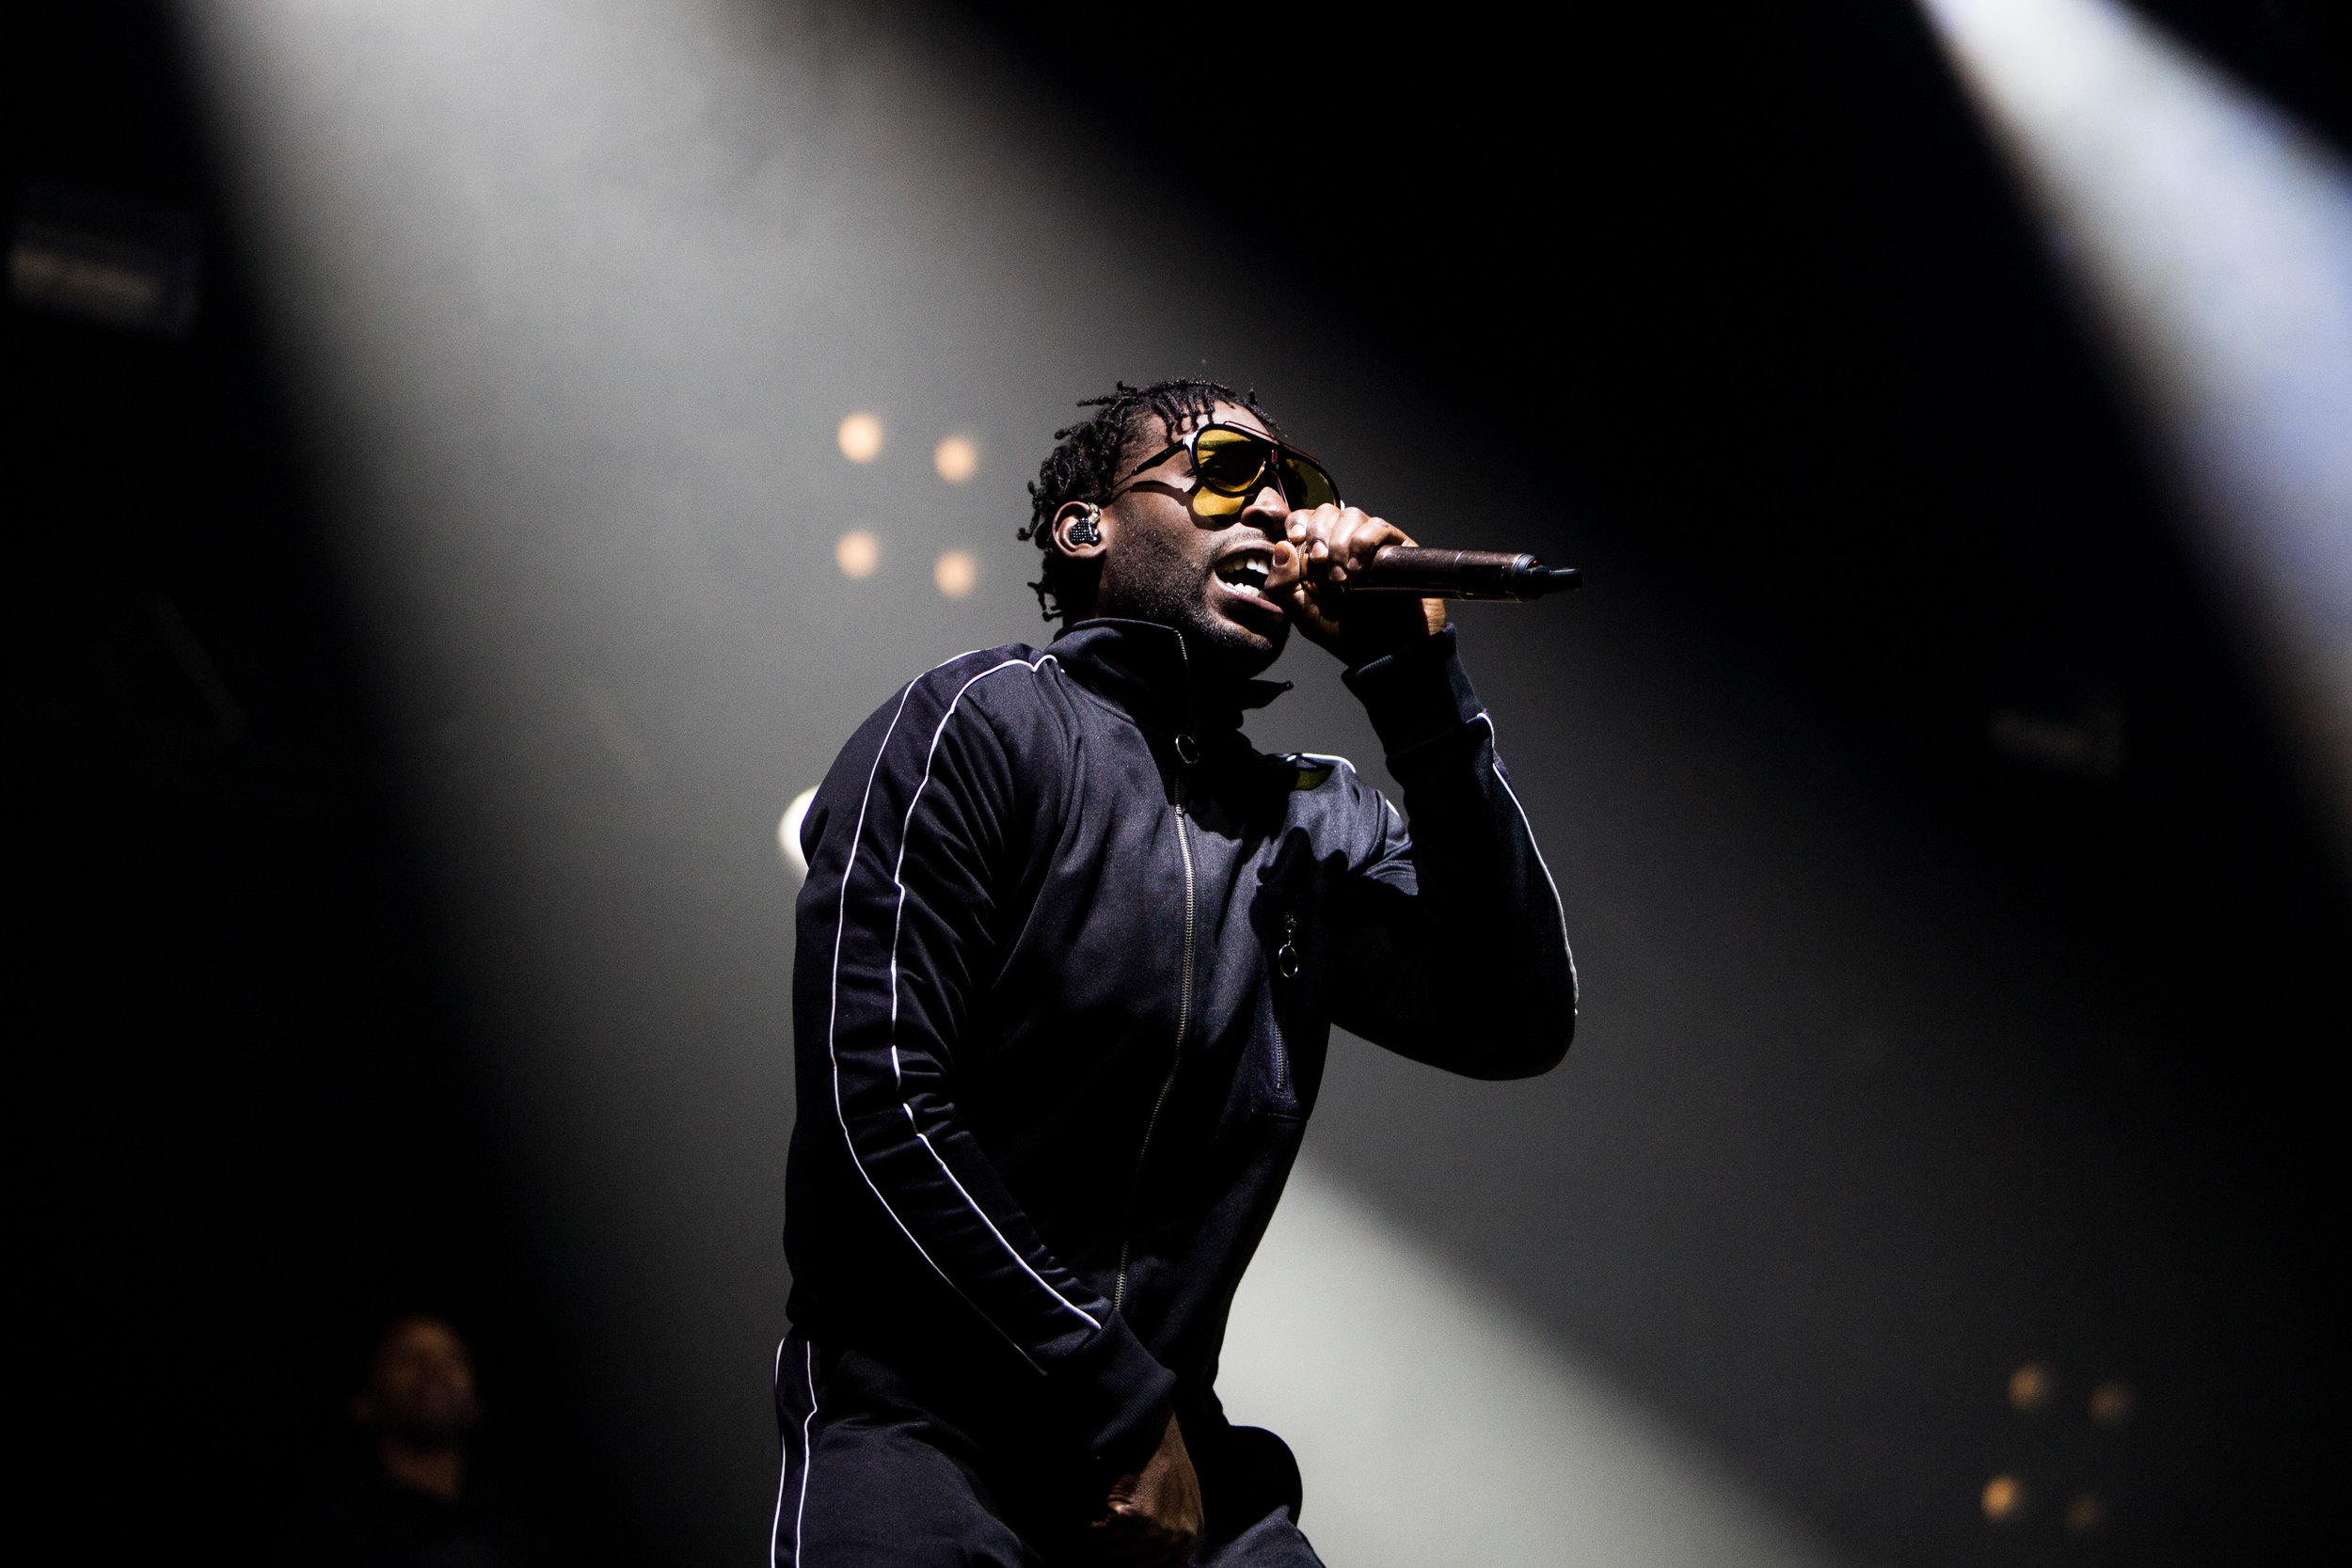 TINIE TEMPAH CLOSING OFF KENDAL CALLING FESTIVAL 2017 ON THE MAIN STAGE - 30/07/2017  PICTURE BY: JODY HARTLEY